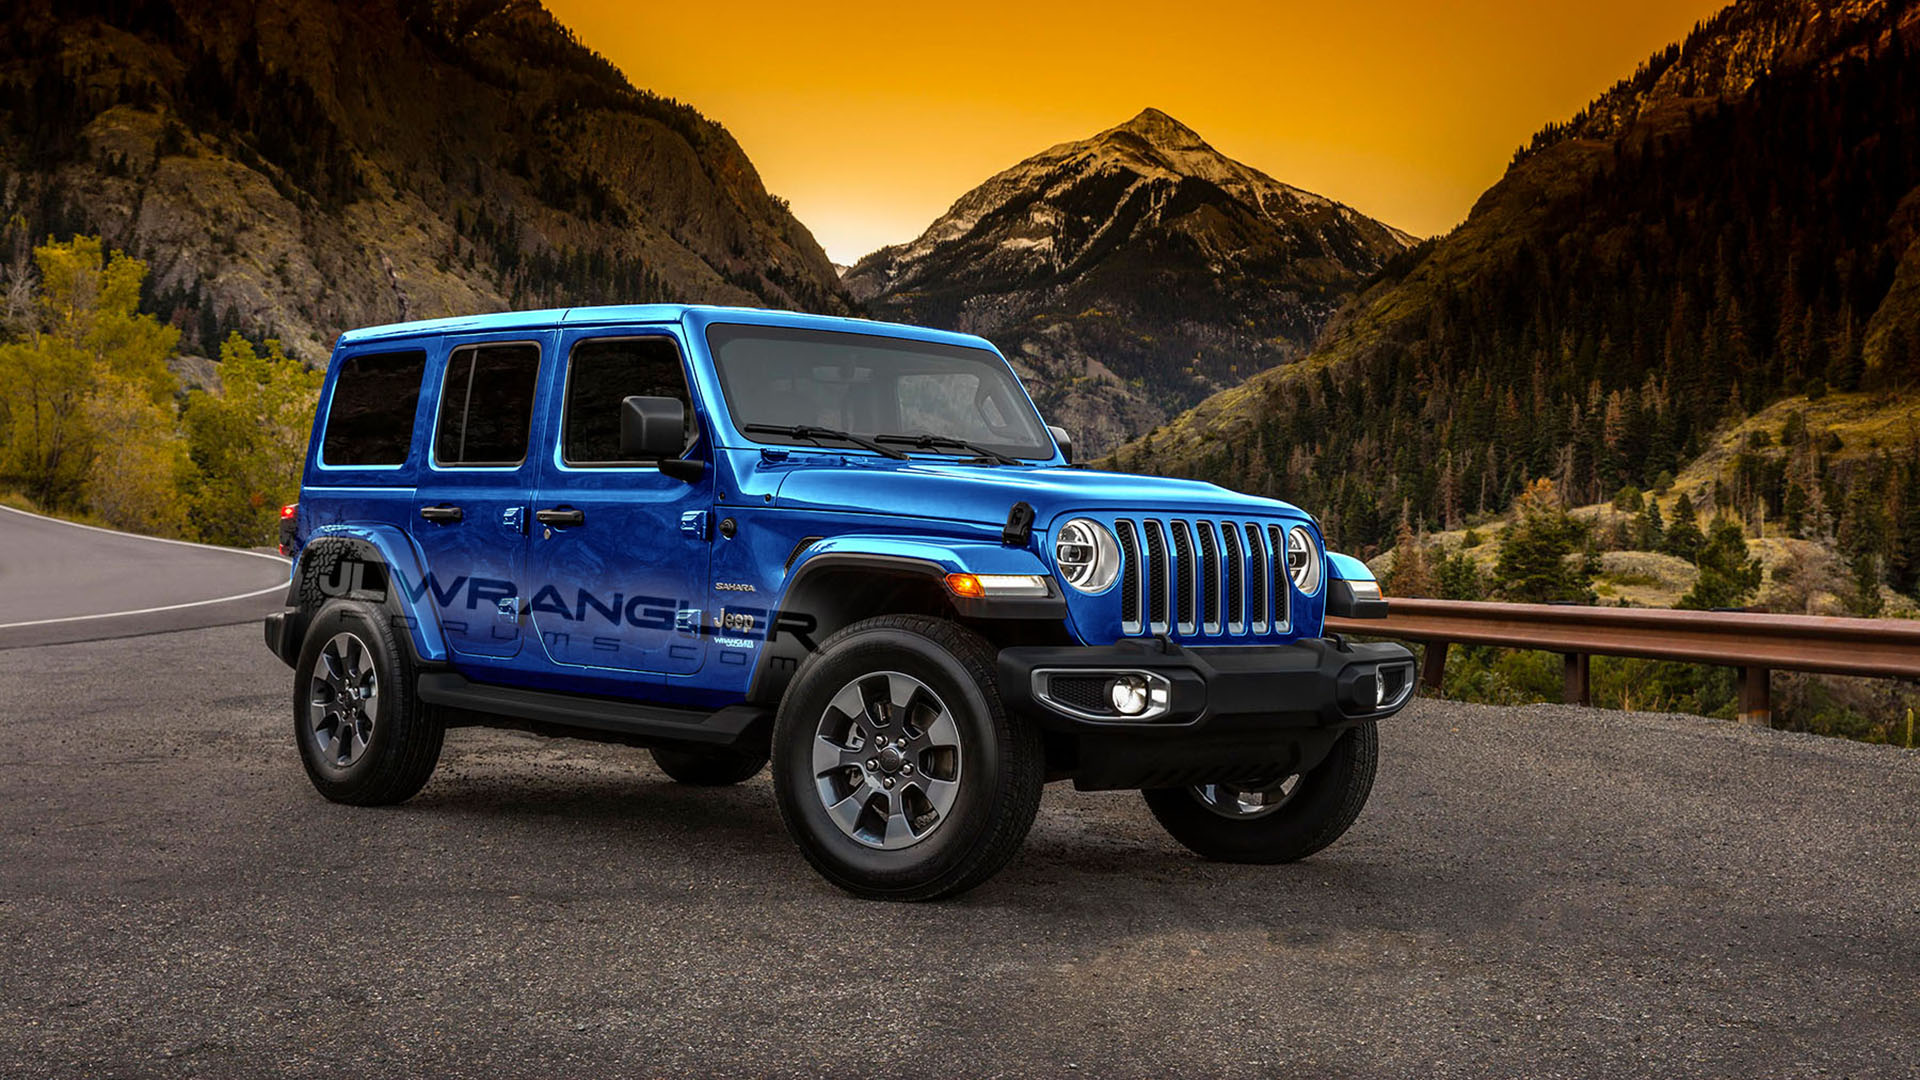 Leaked Dealer Info Shows 2018 Jeep Wrangler Paint Options